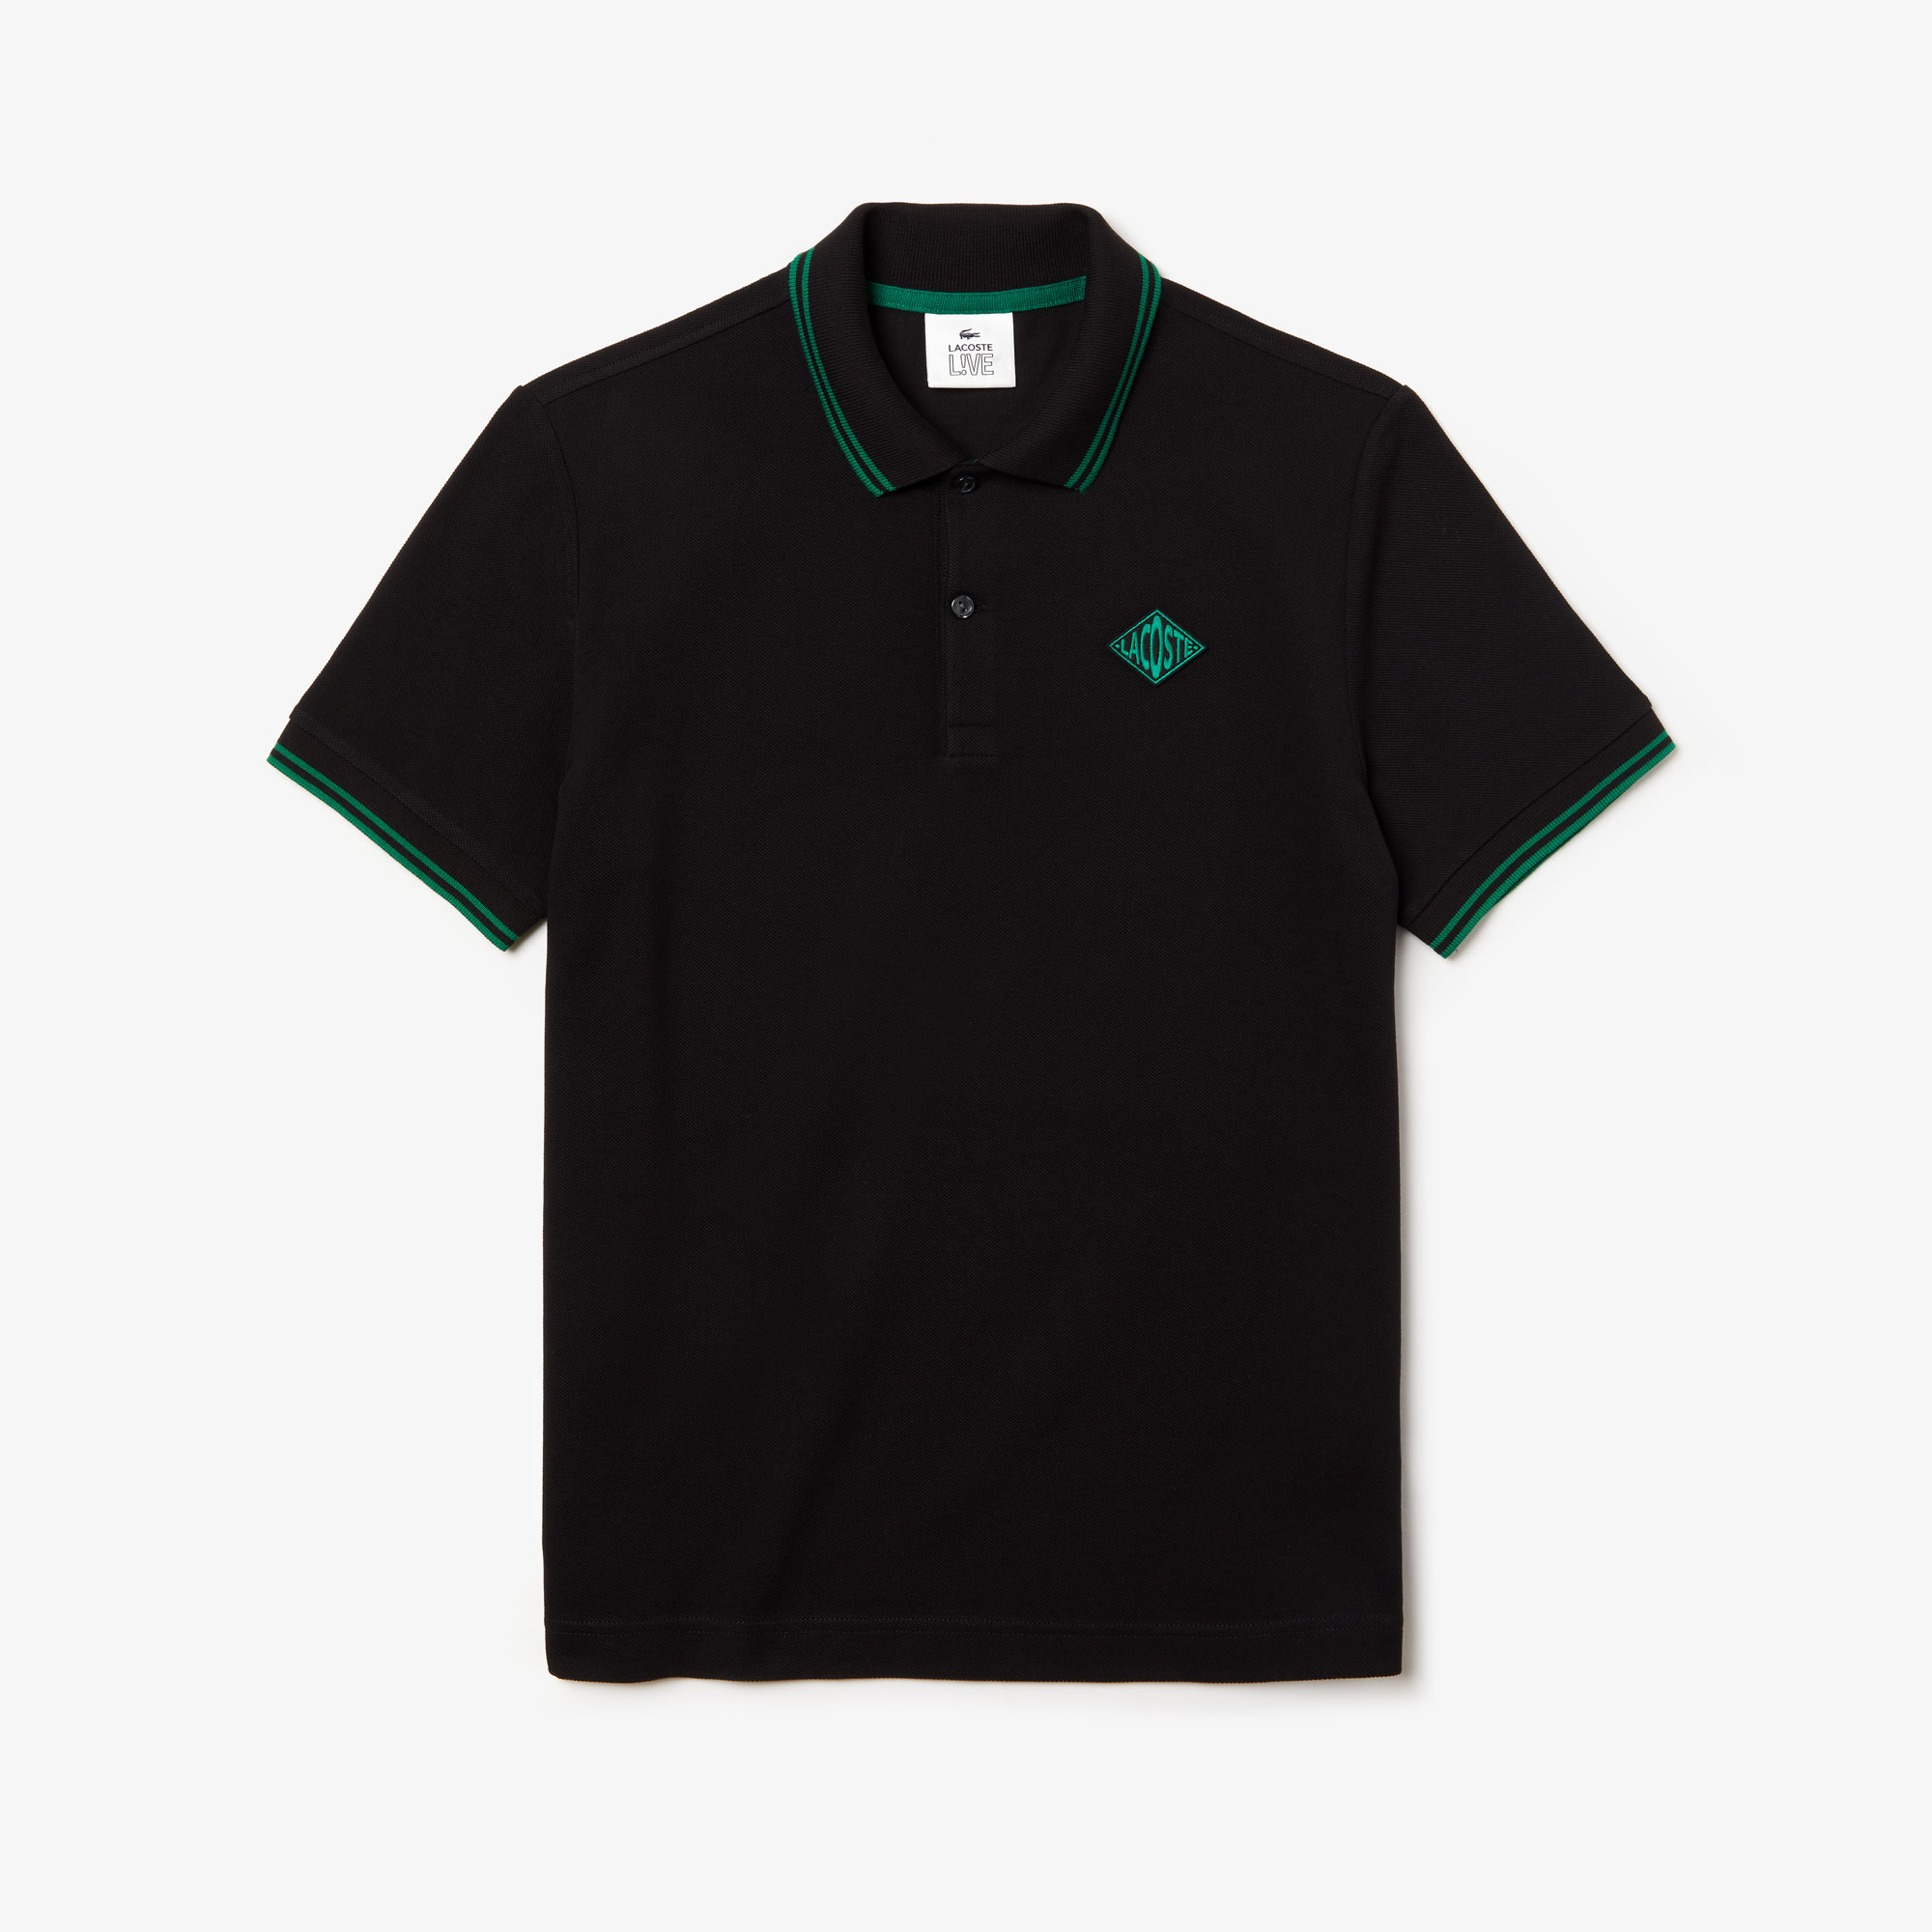 8684eb39ffa0 LACOSTE LIVE: Clothing, Footwear & fragrances collection